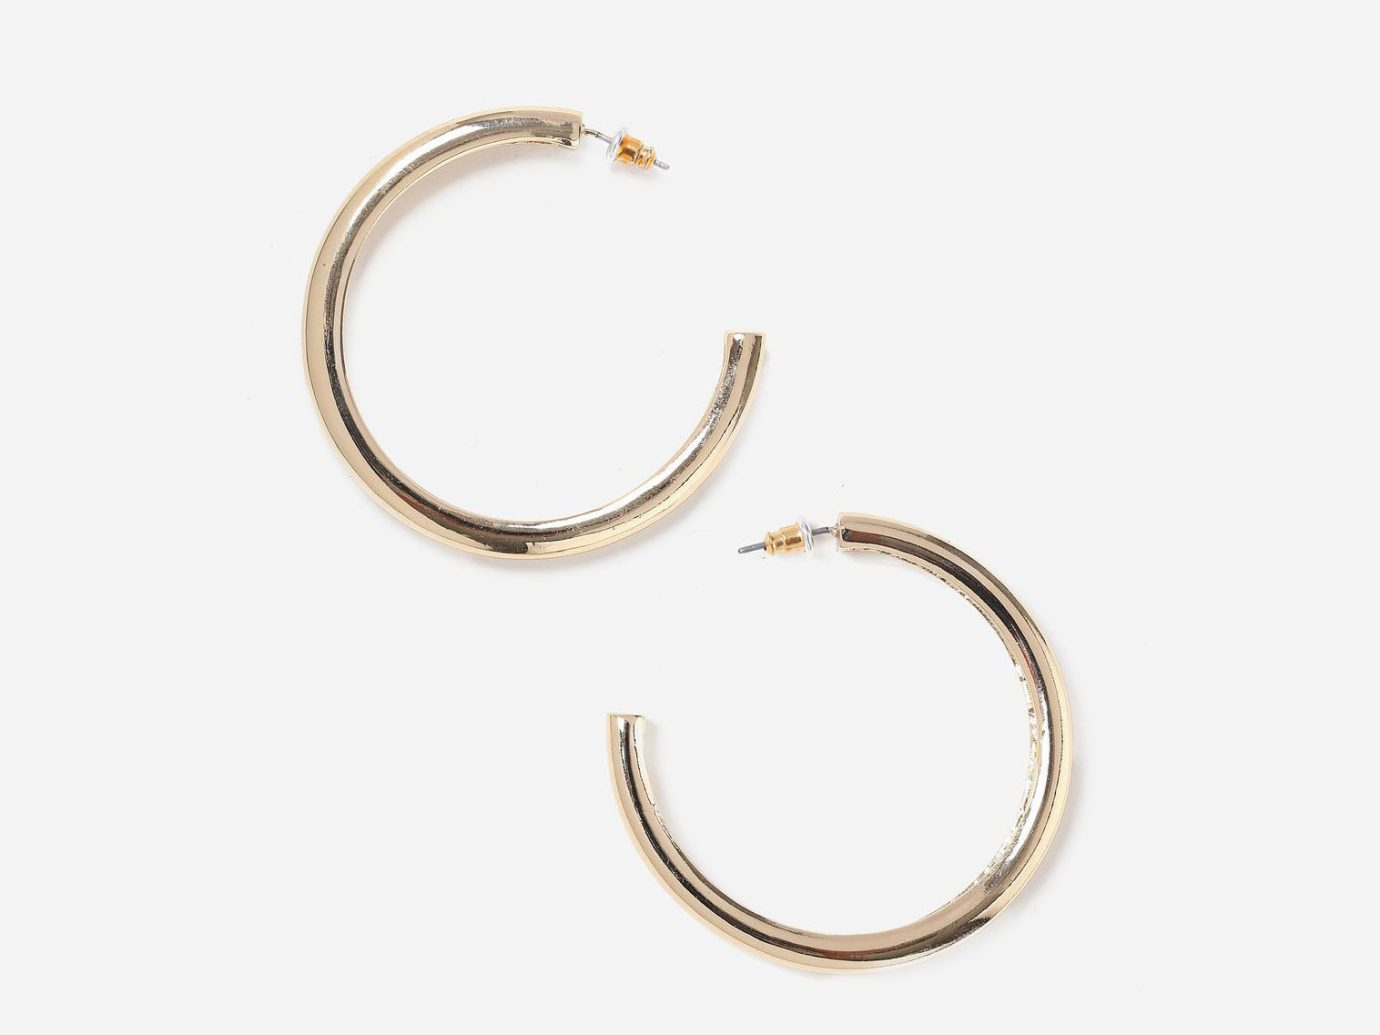 City NYC Style + Design Travel Shop earrings fashion accessory jewellery body jewelry silver product design metal